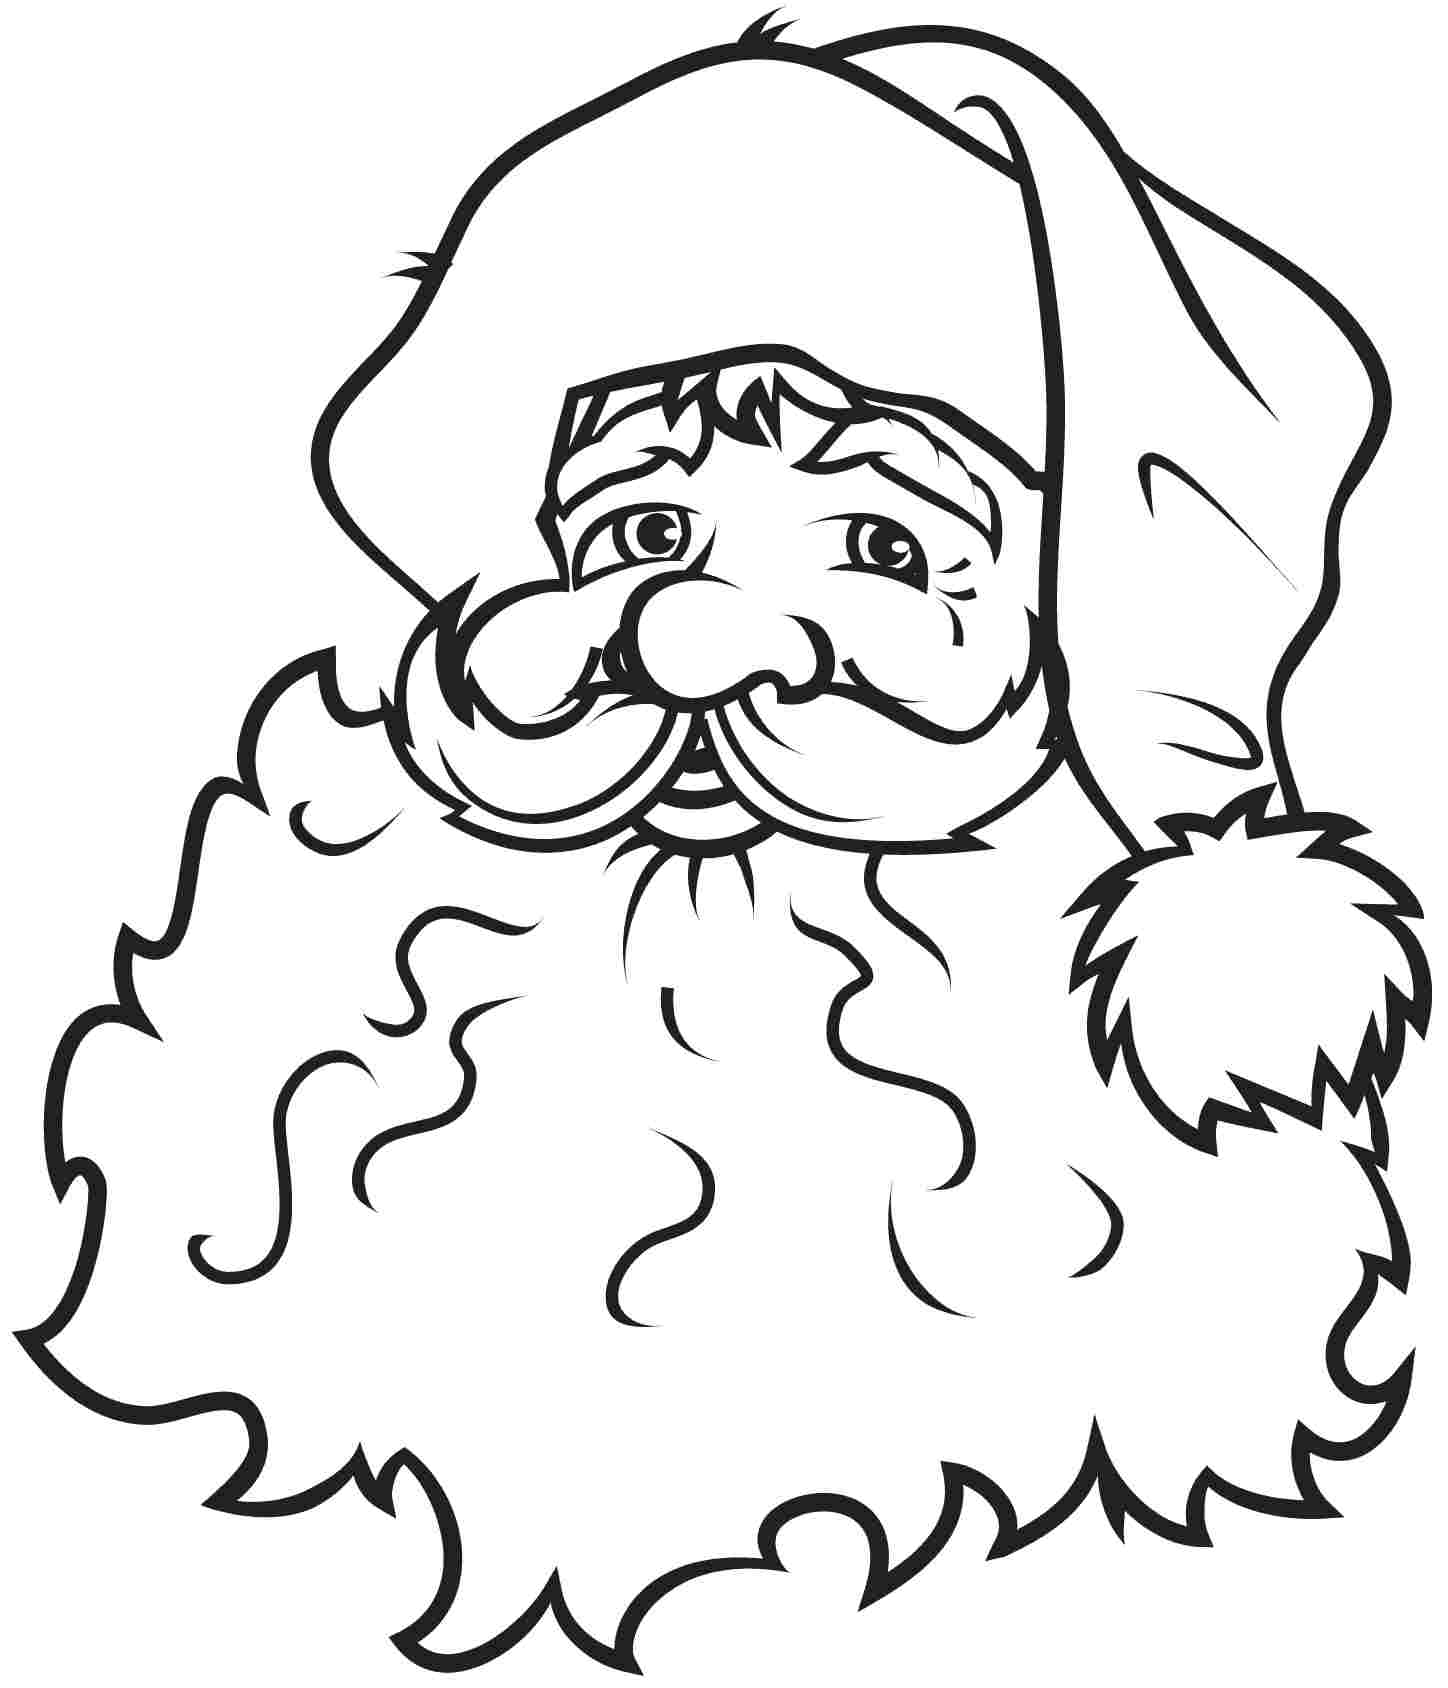 Free Santa Claus Outline, Download Free Clip Art, Free Clip.